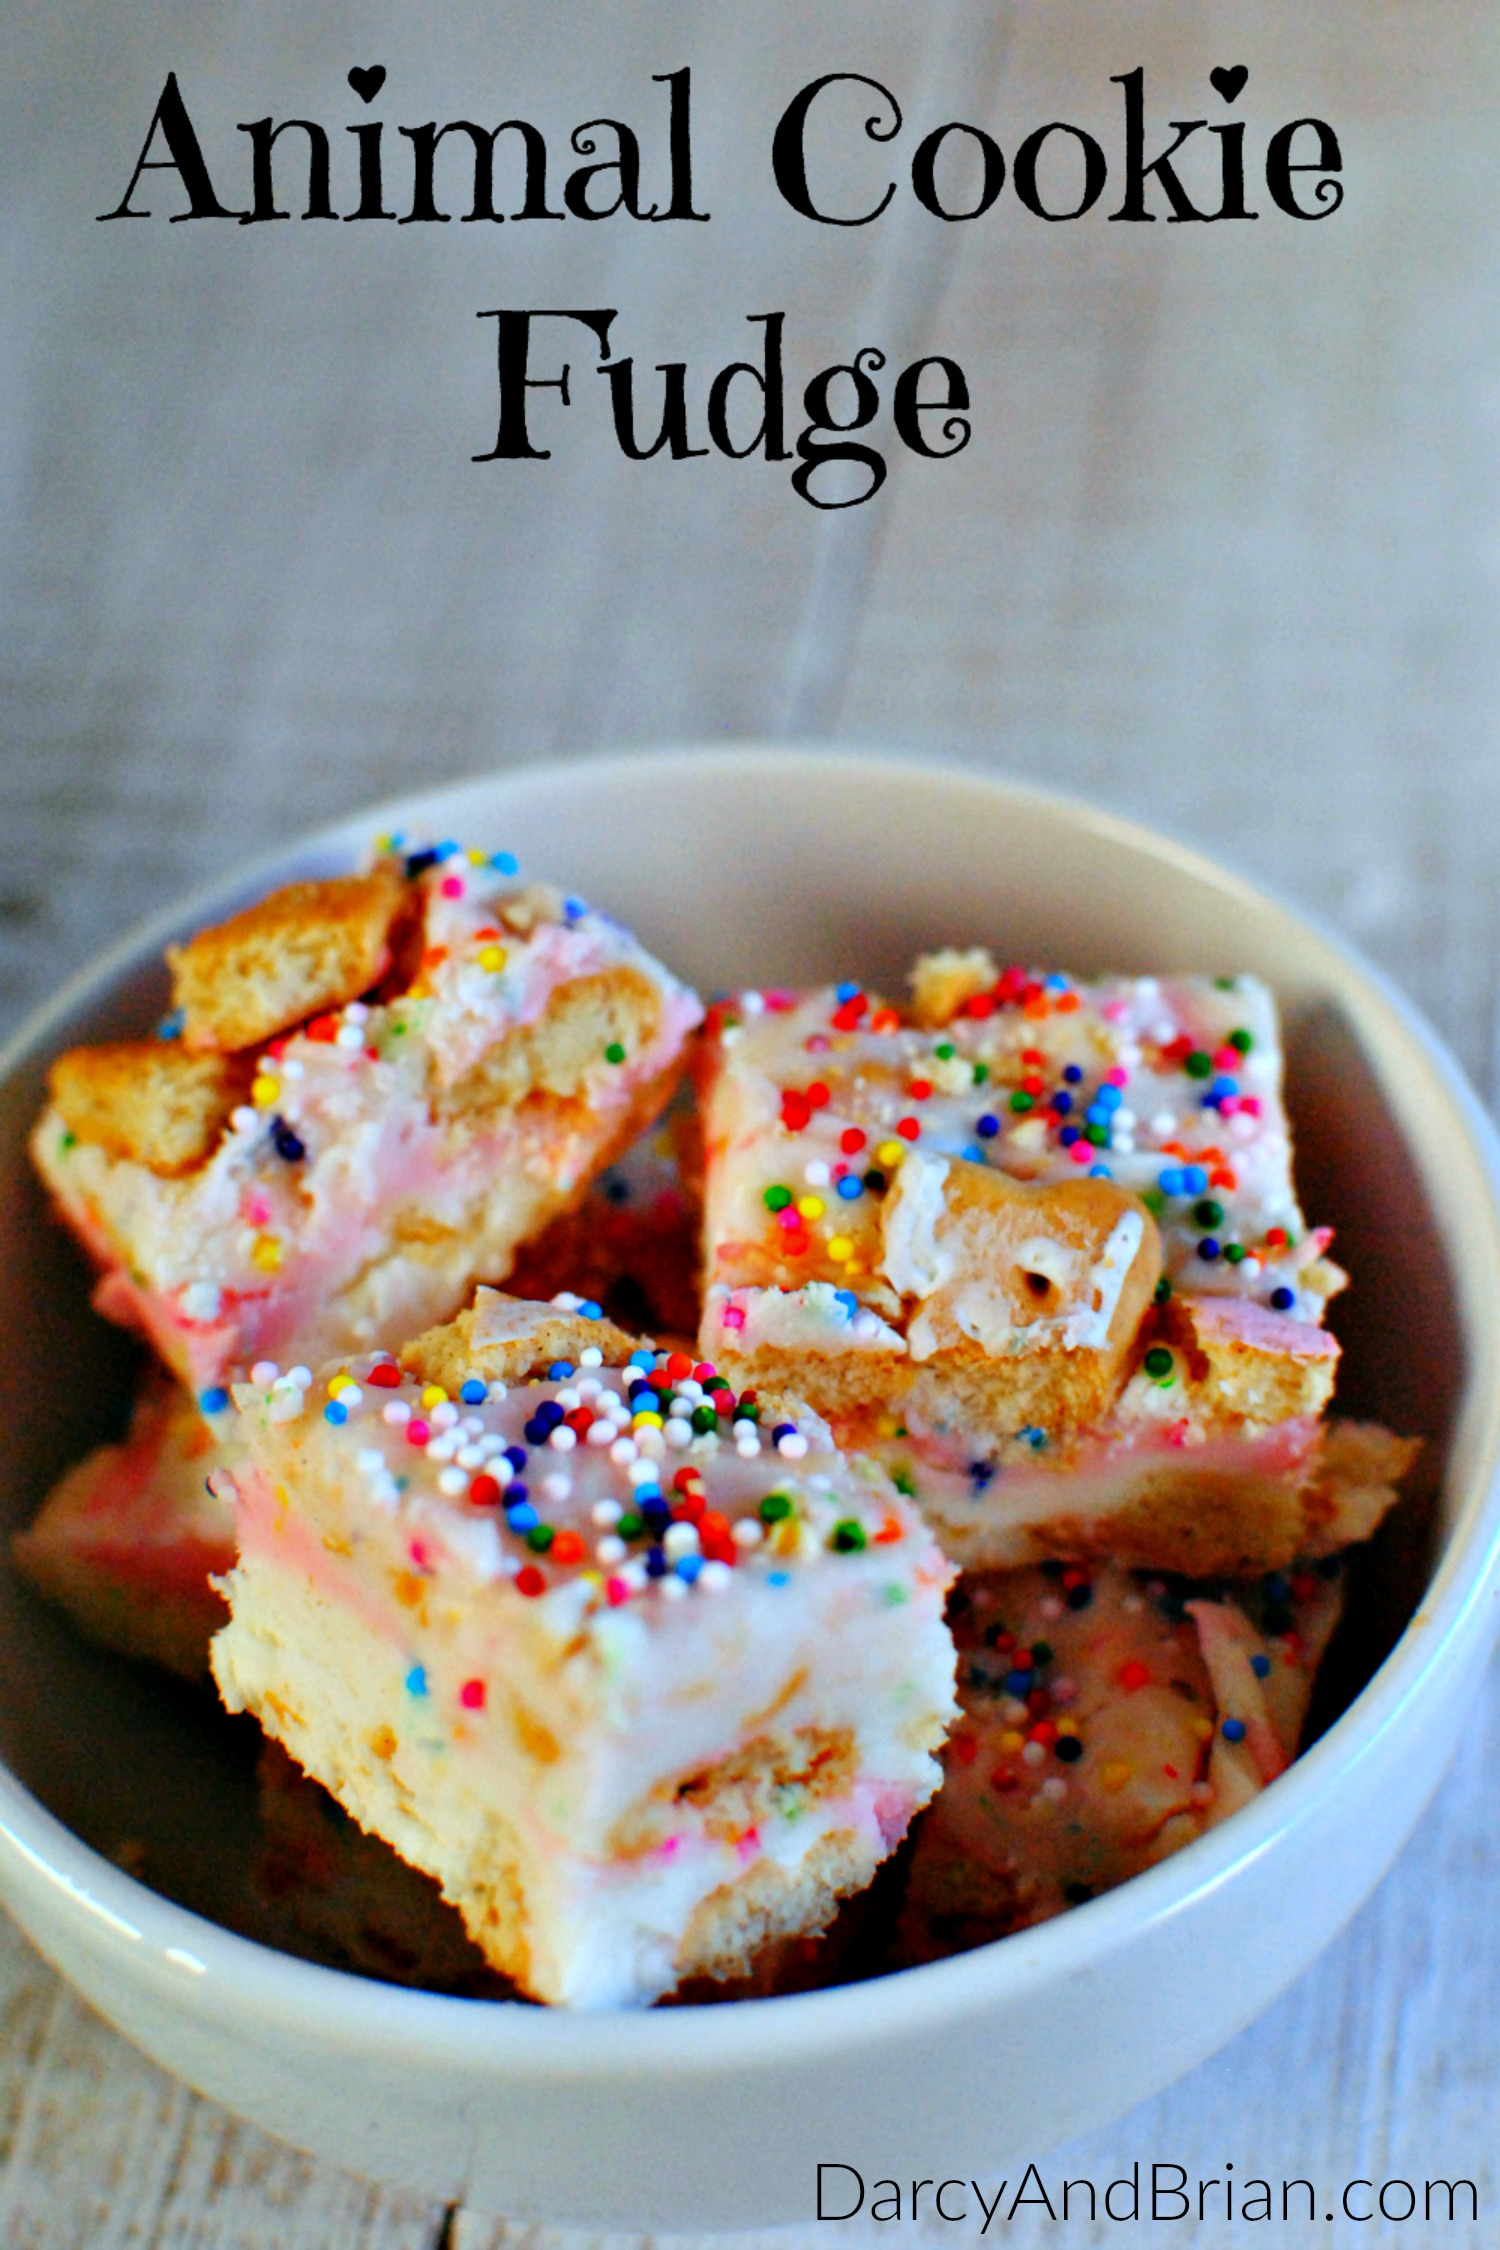 Make this Animal Cookie Fantasy Fudge Recipe for a fun and tasty treat.